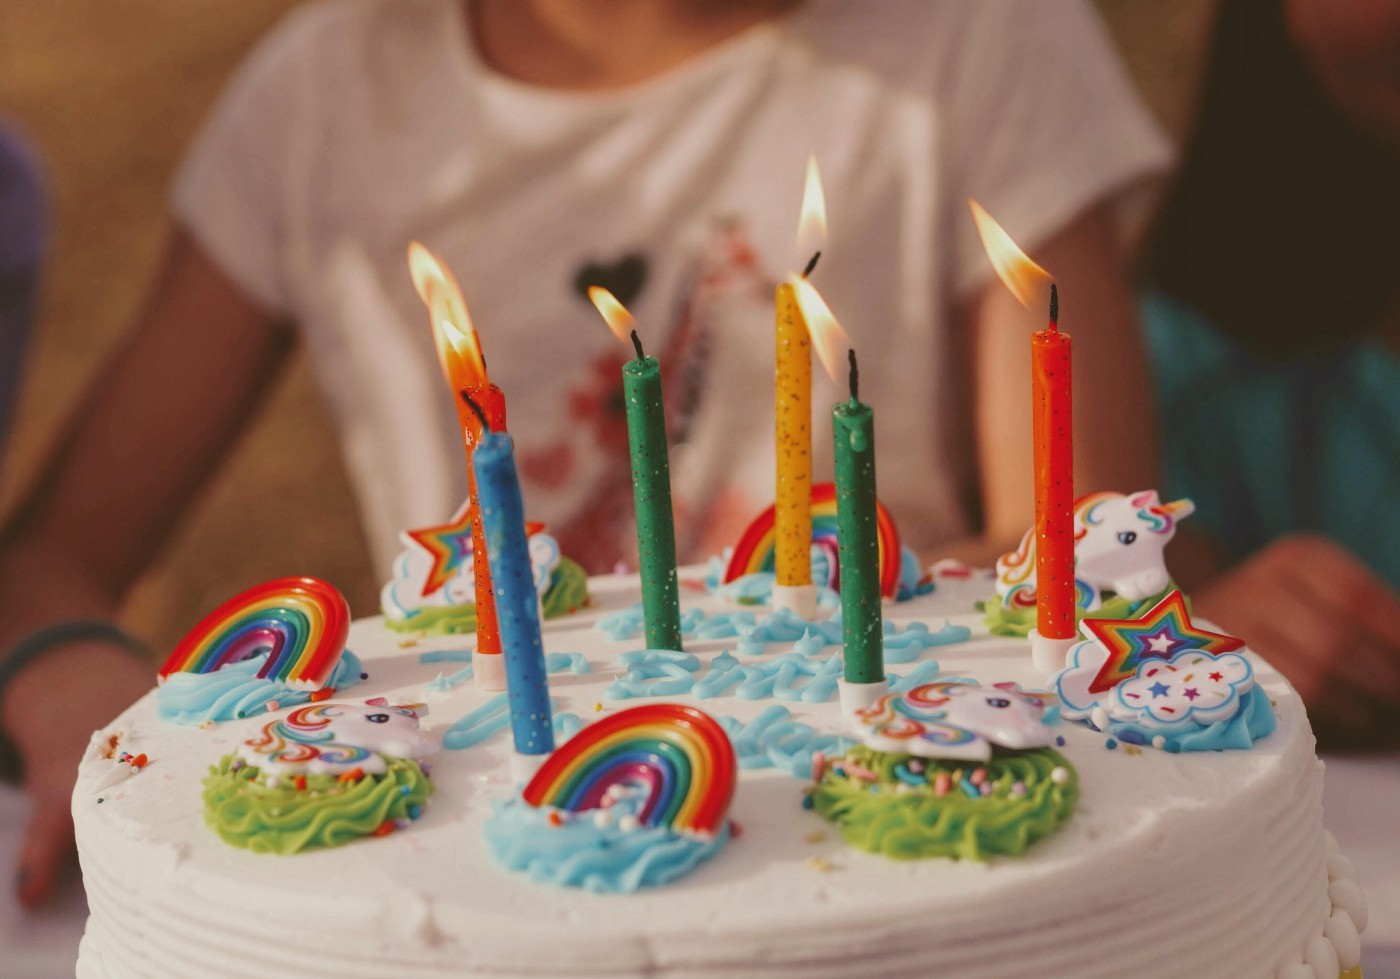 5 Simple Ways to Celebrate Your Child's Birthday during Lock-down